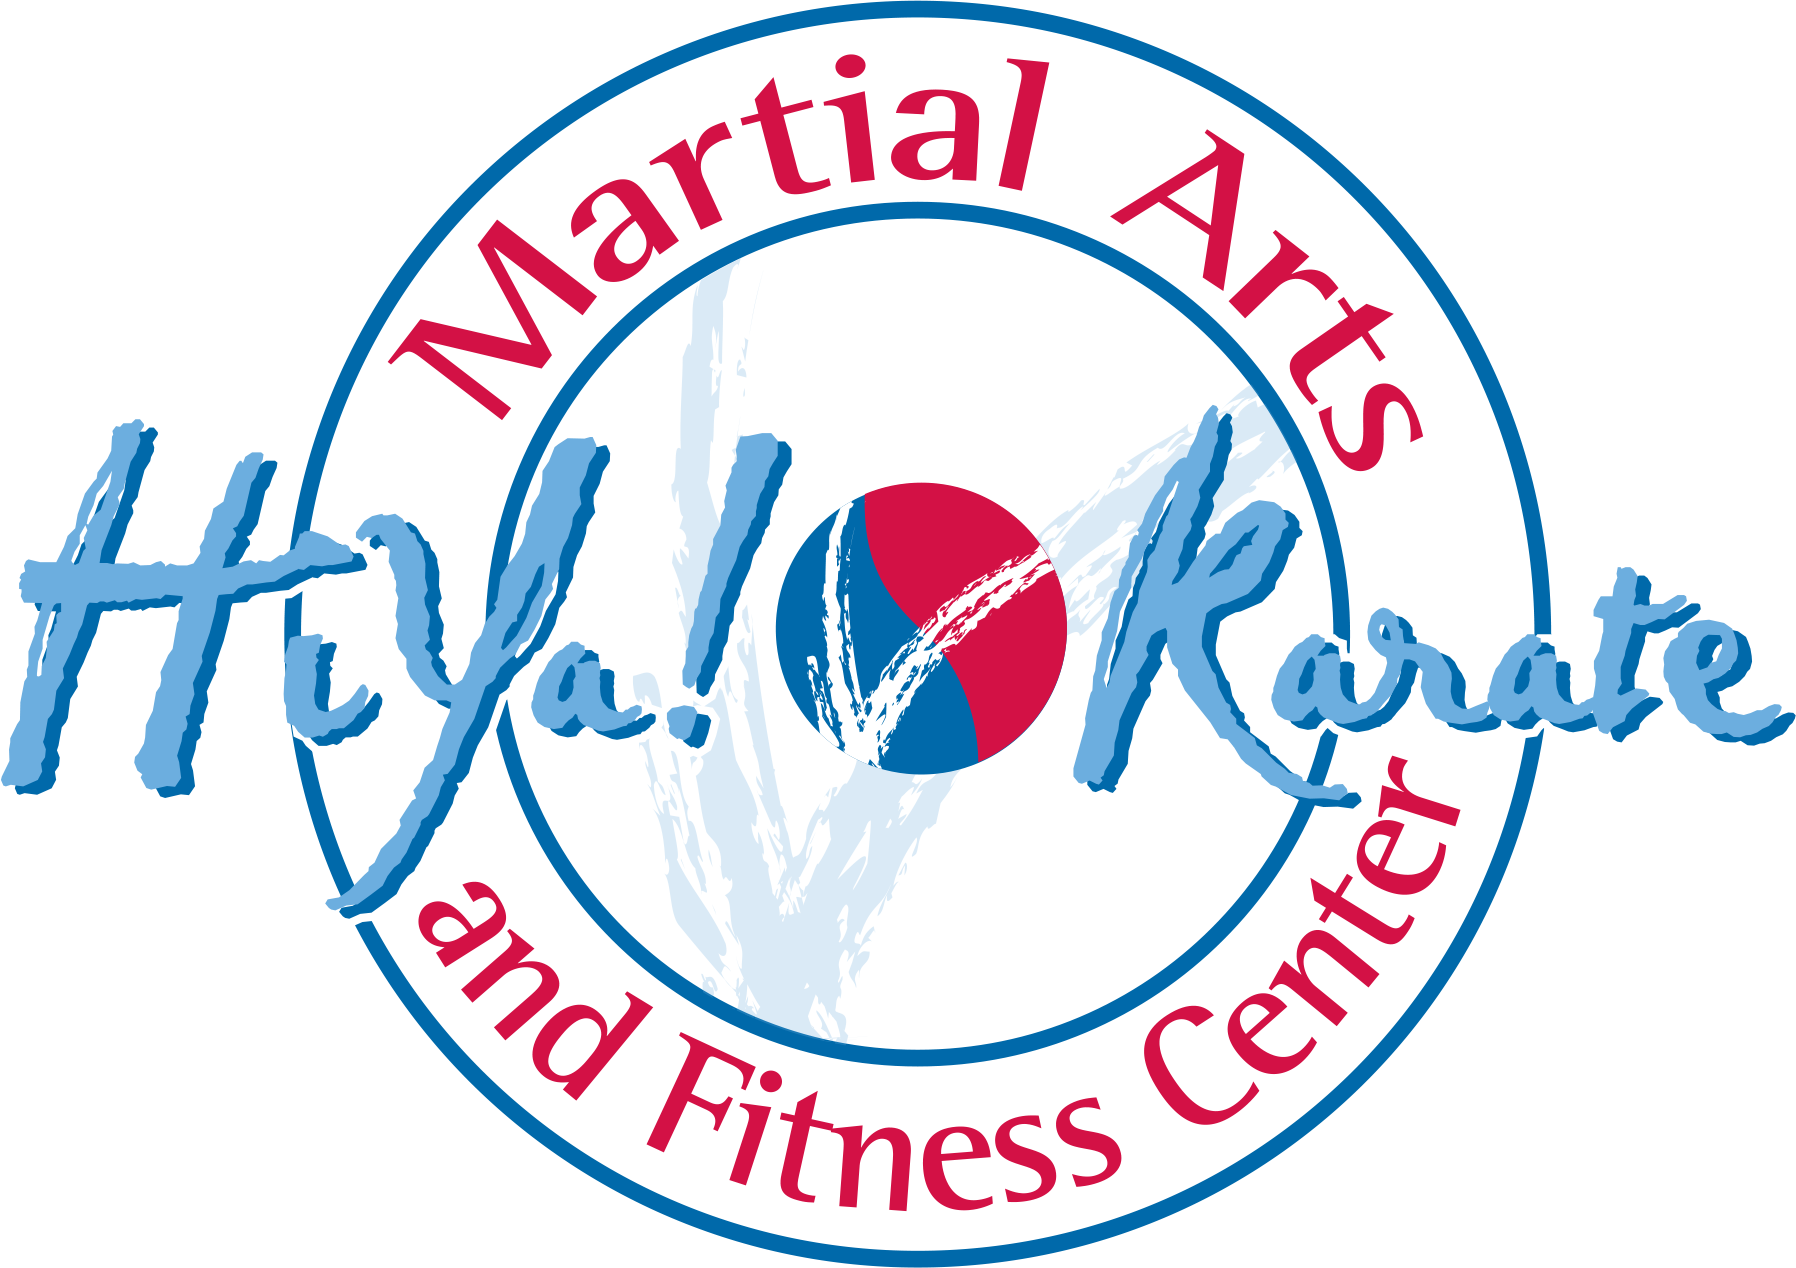 At HiYa, we TRAIN FOR LIFE! - Through Martial Arts and fitness HiYa! Karate will allow you and your children to attain the physical, mental, and behavioral discipline needed to cultivate a healthy, balanced body and mind.